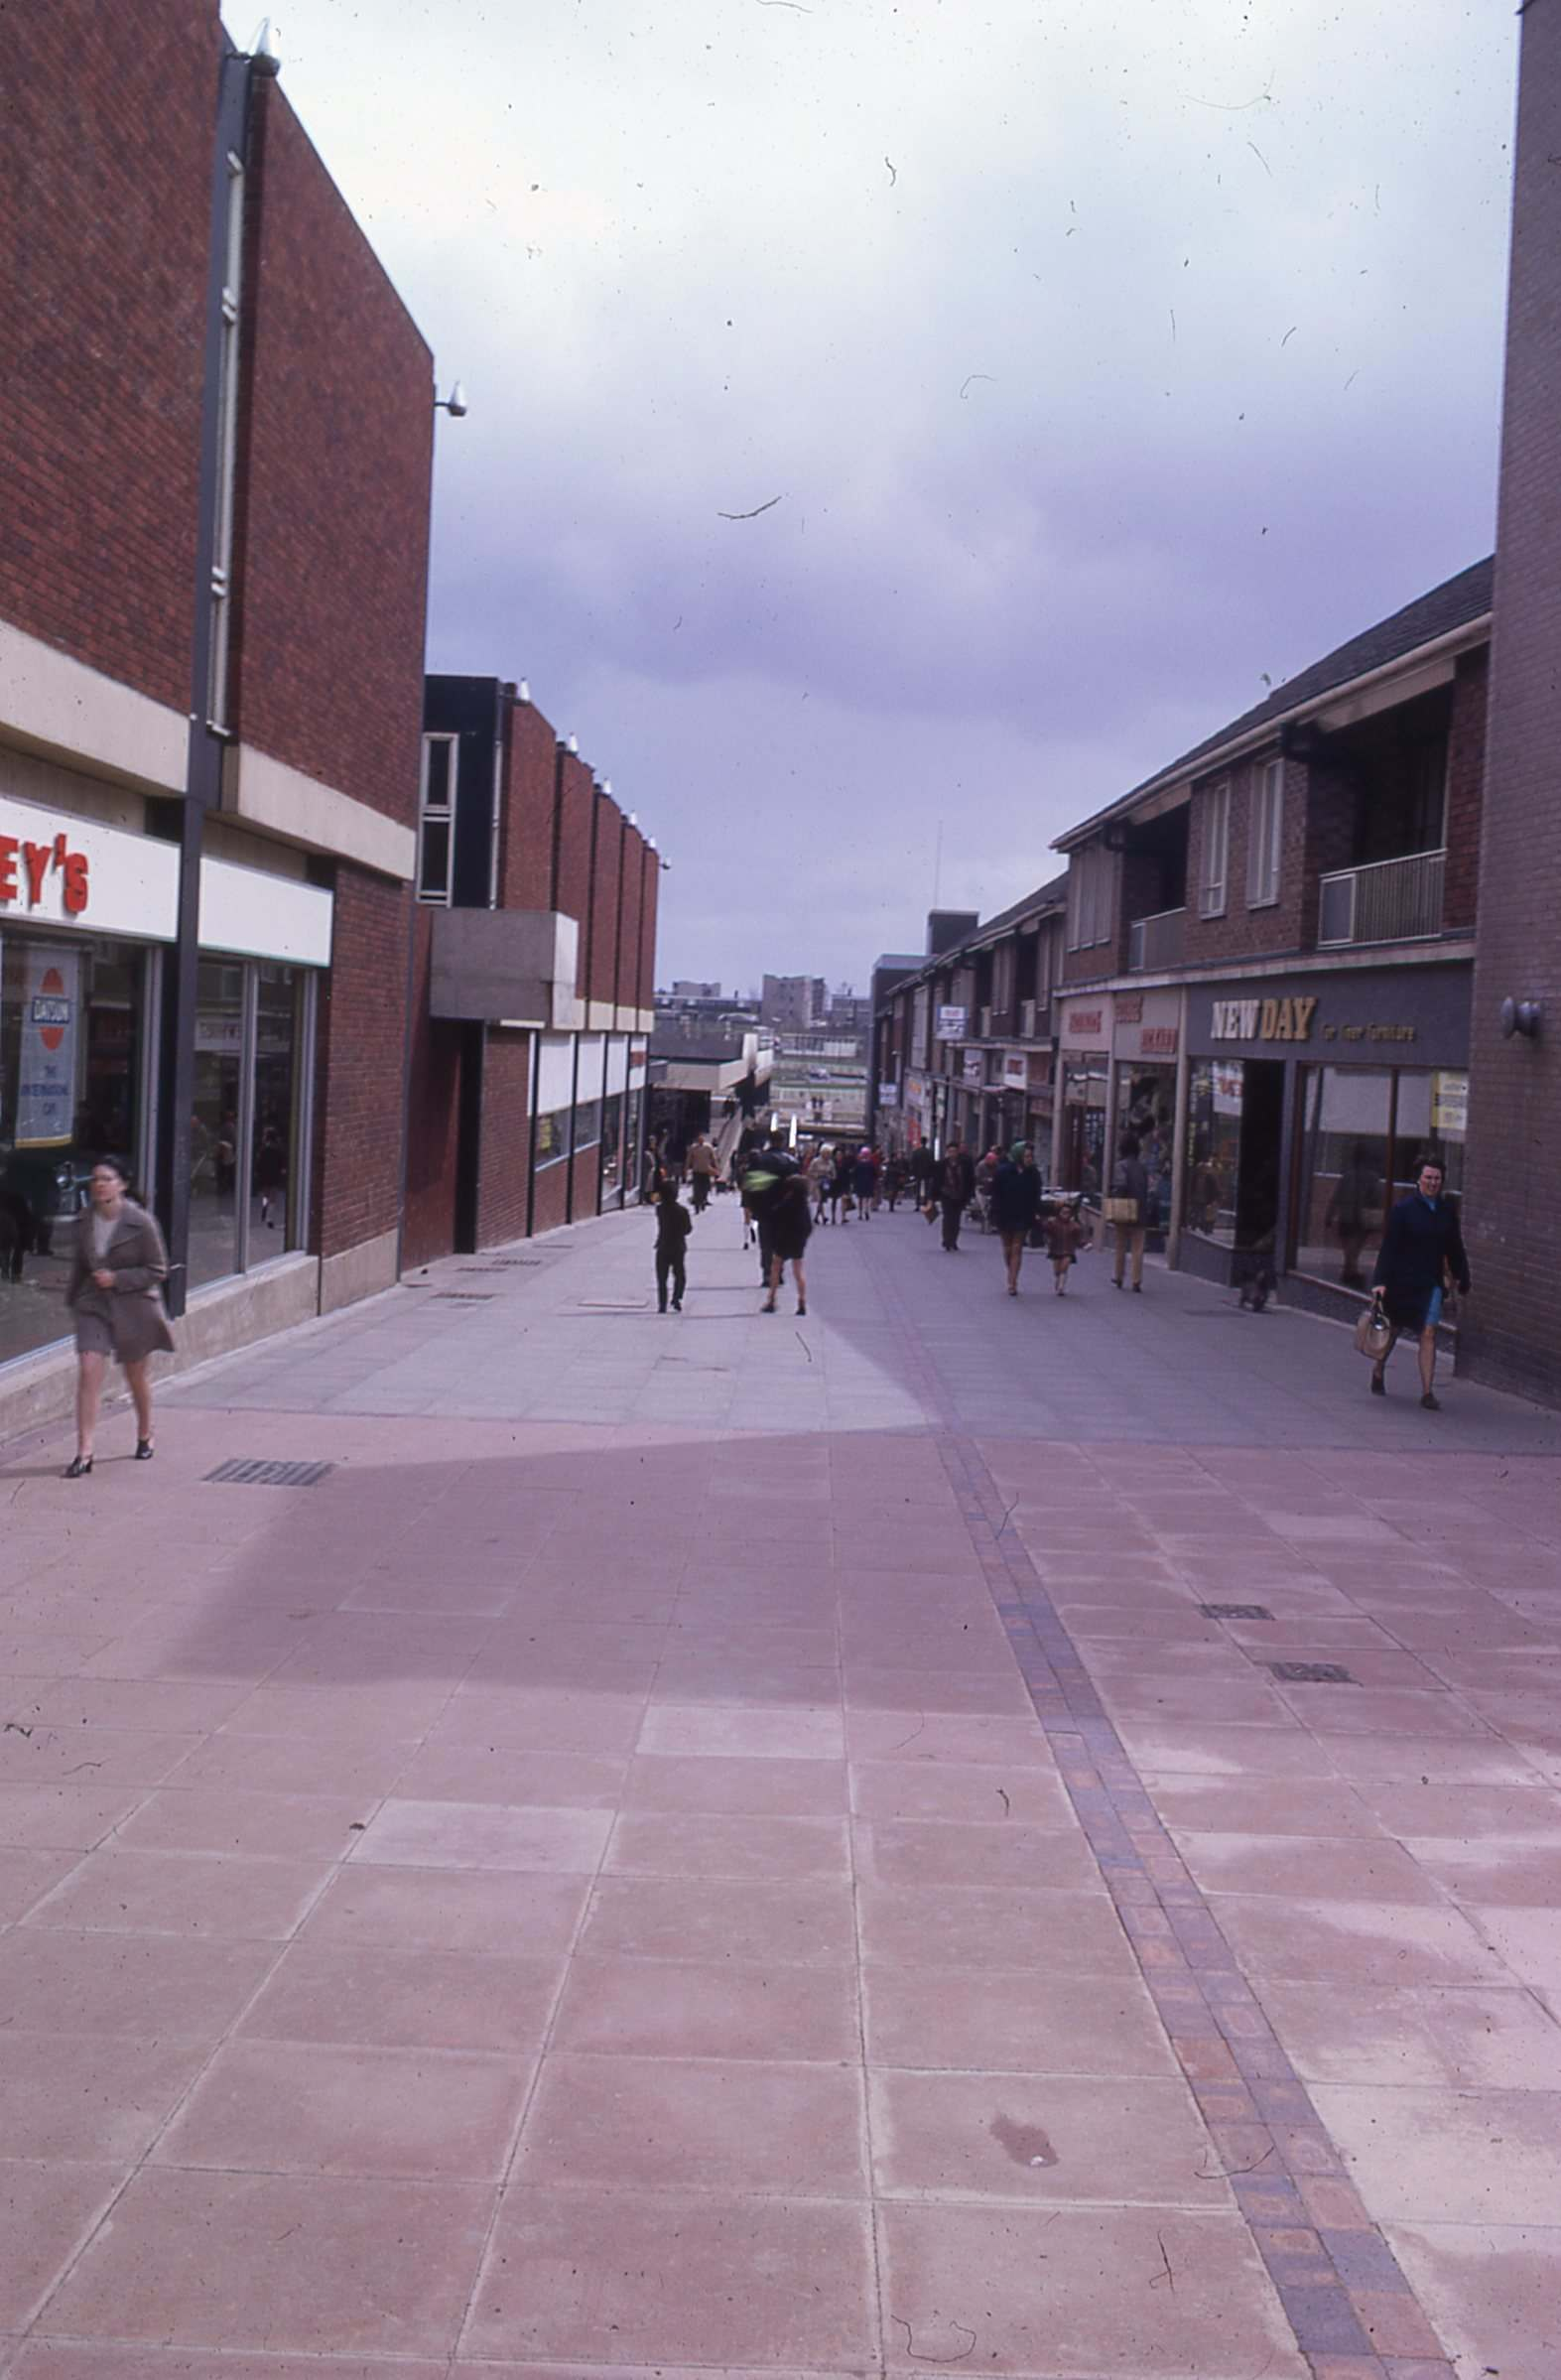 Town Centre, Peterlee by J.R. James.